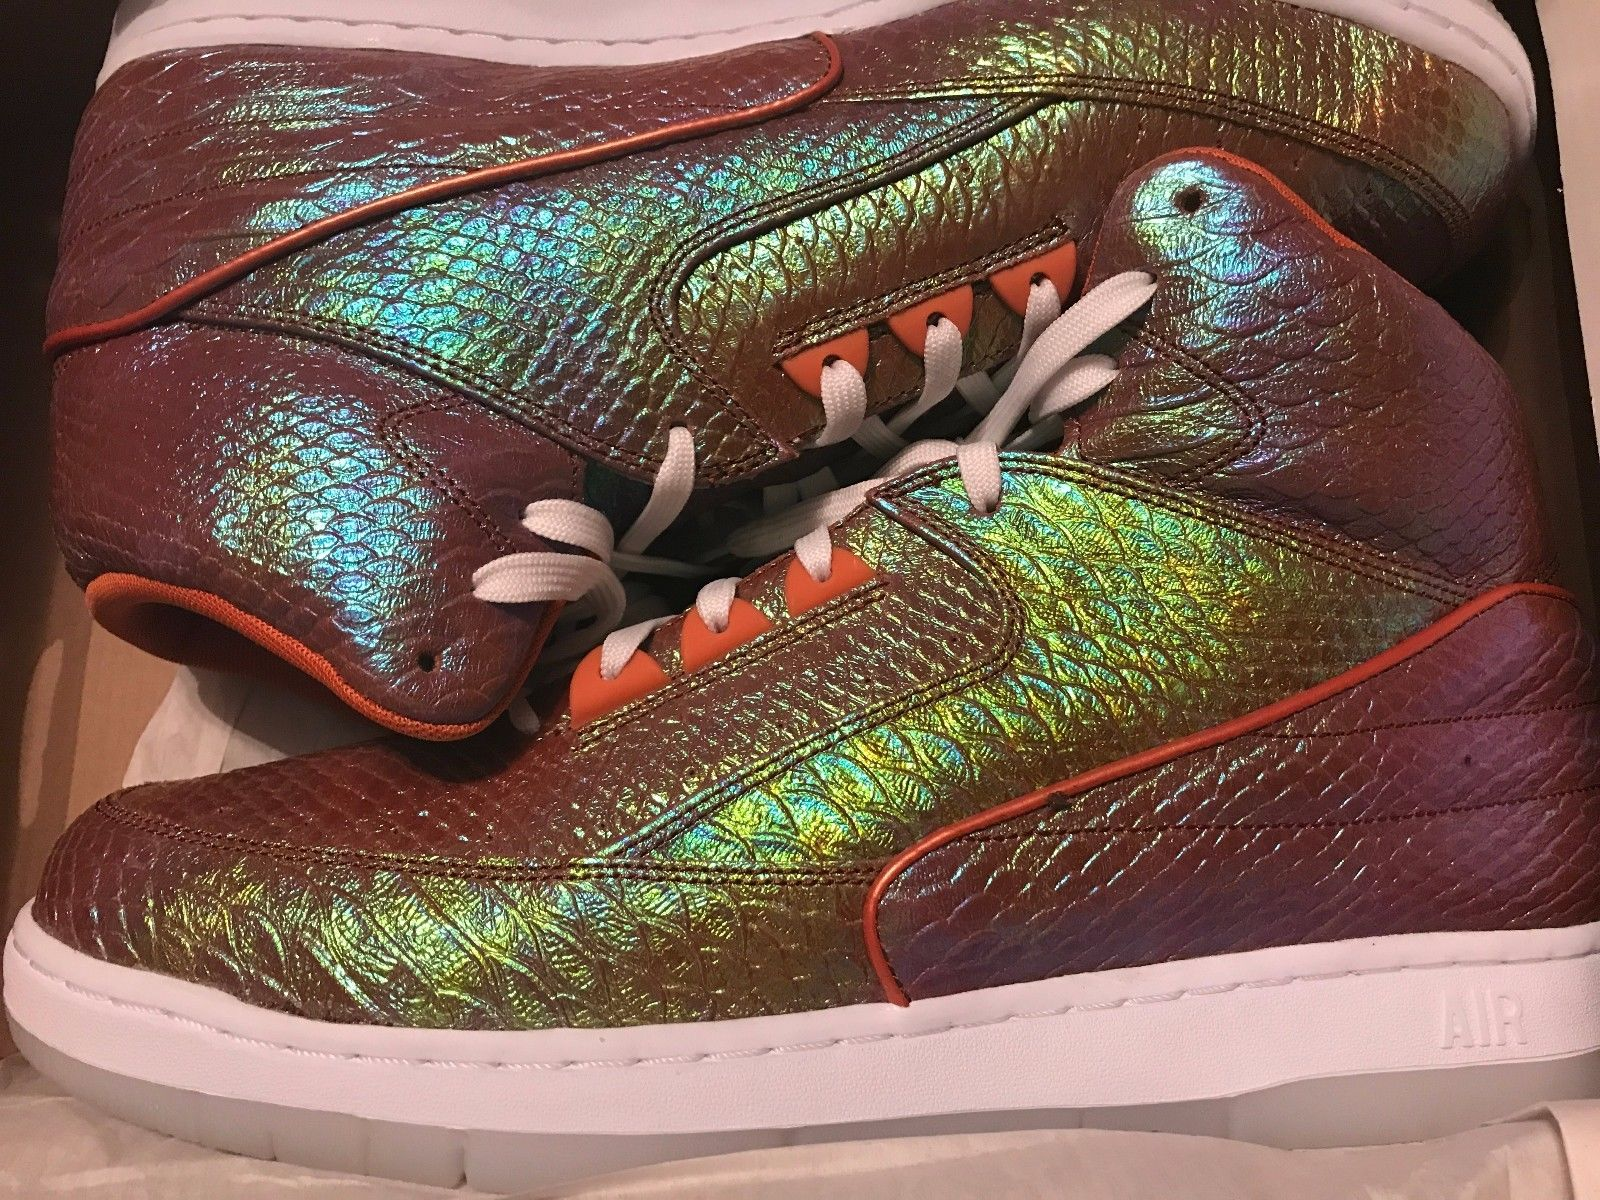 Image of NIKE AIR PYTHON PRM MULTI-COLOR METALLIC MENS SNEAKERS Sz 13 NEW